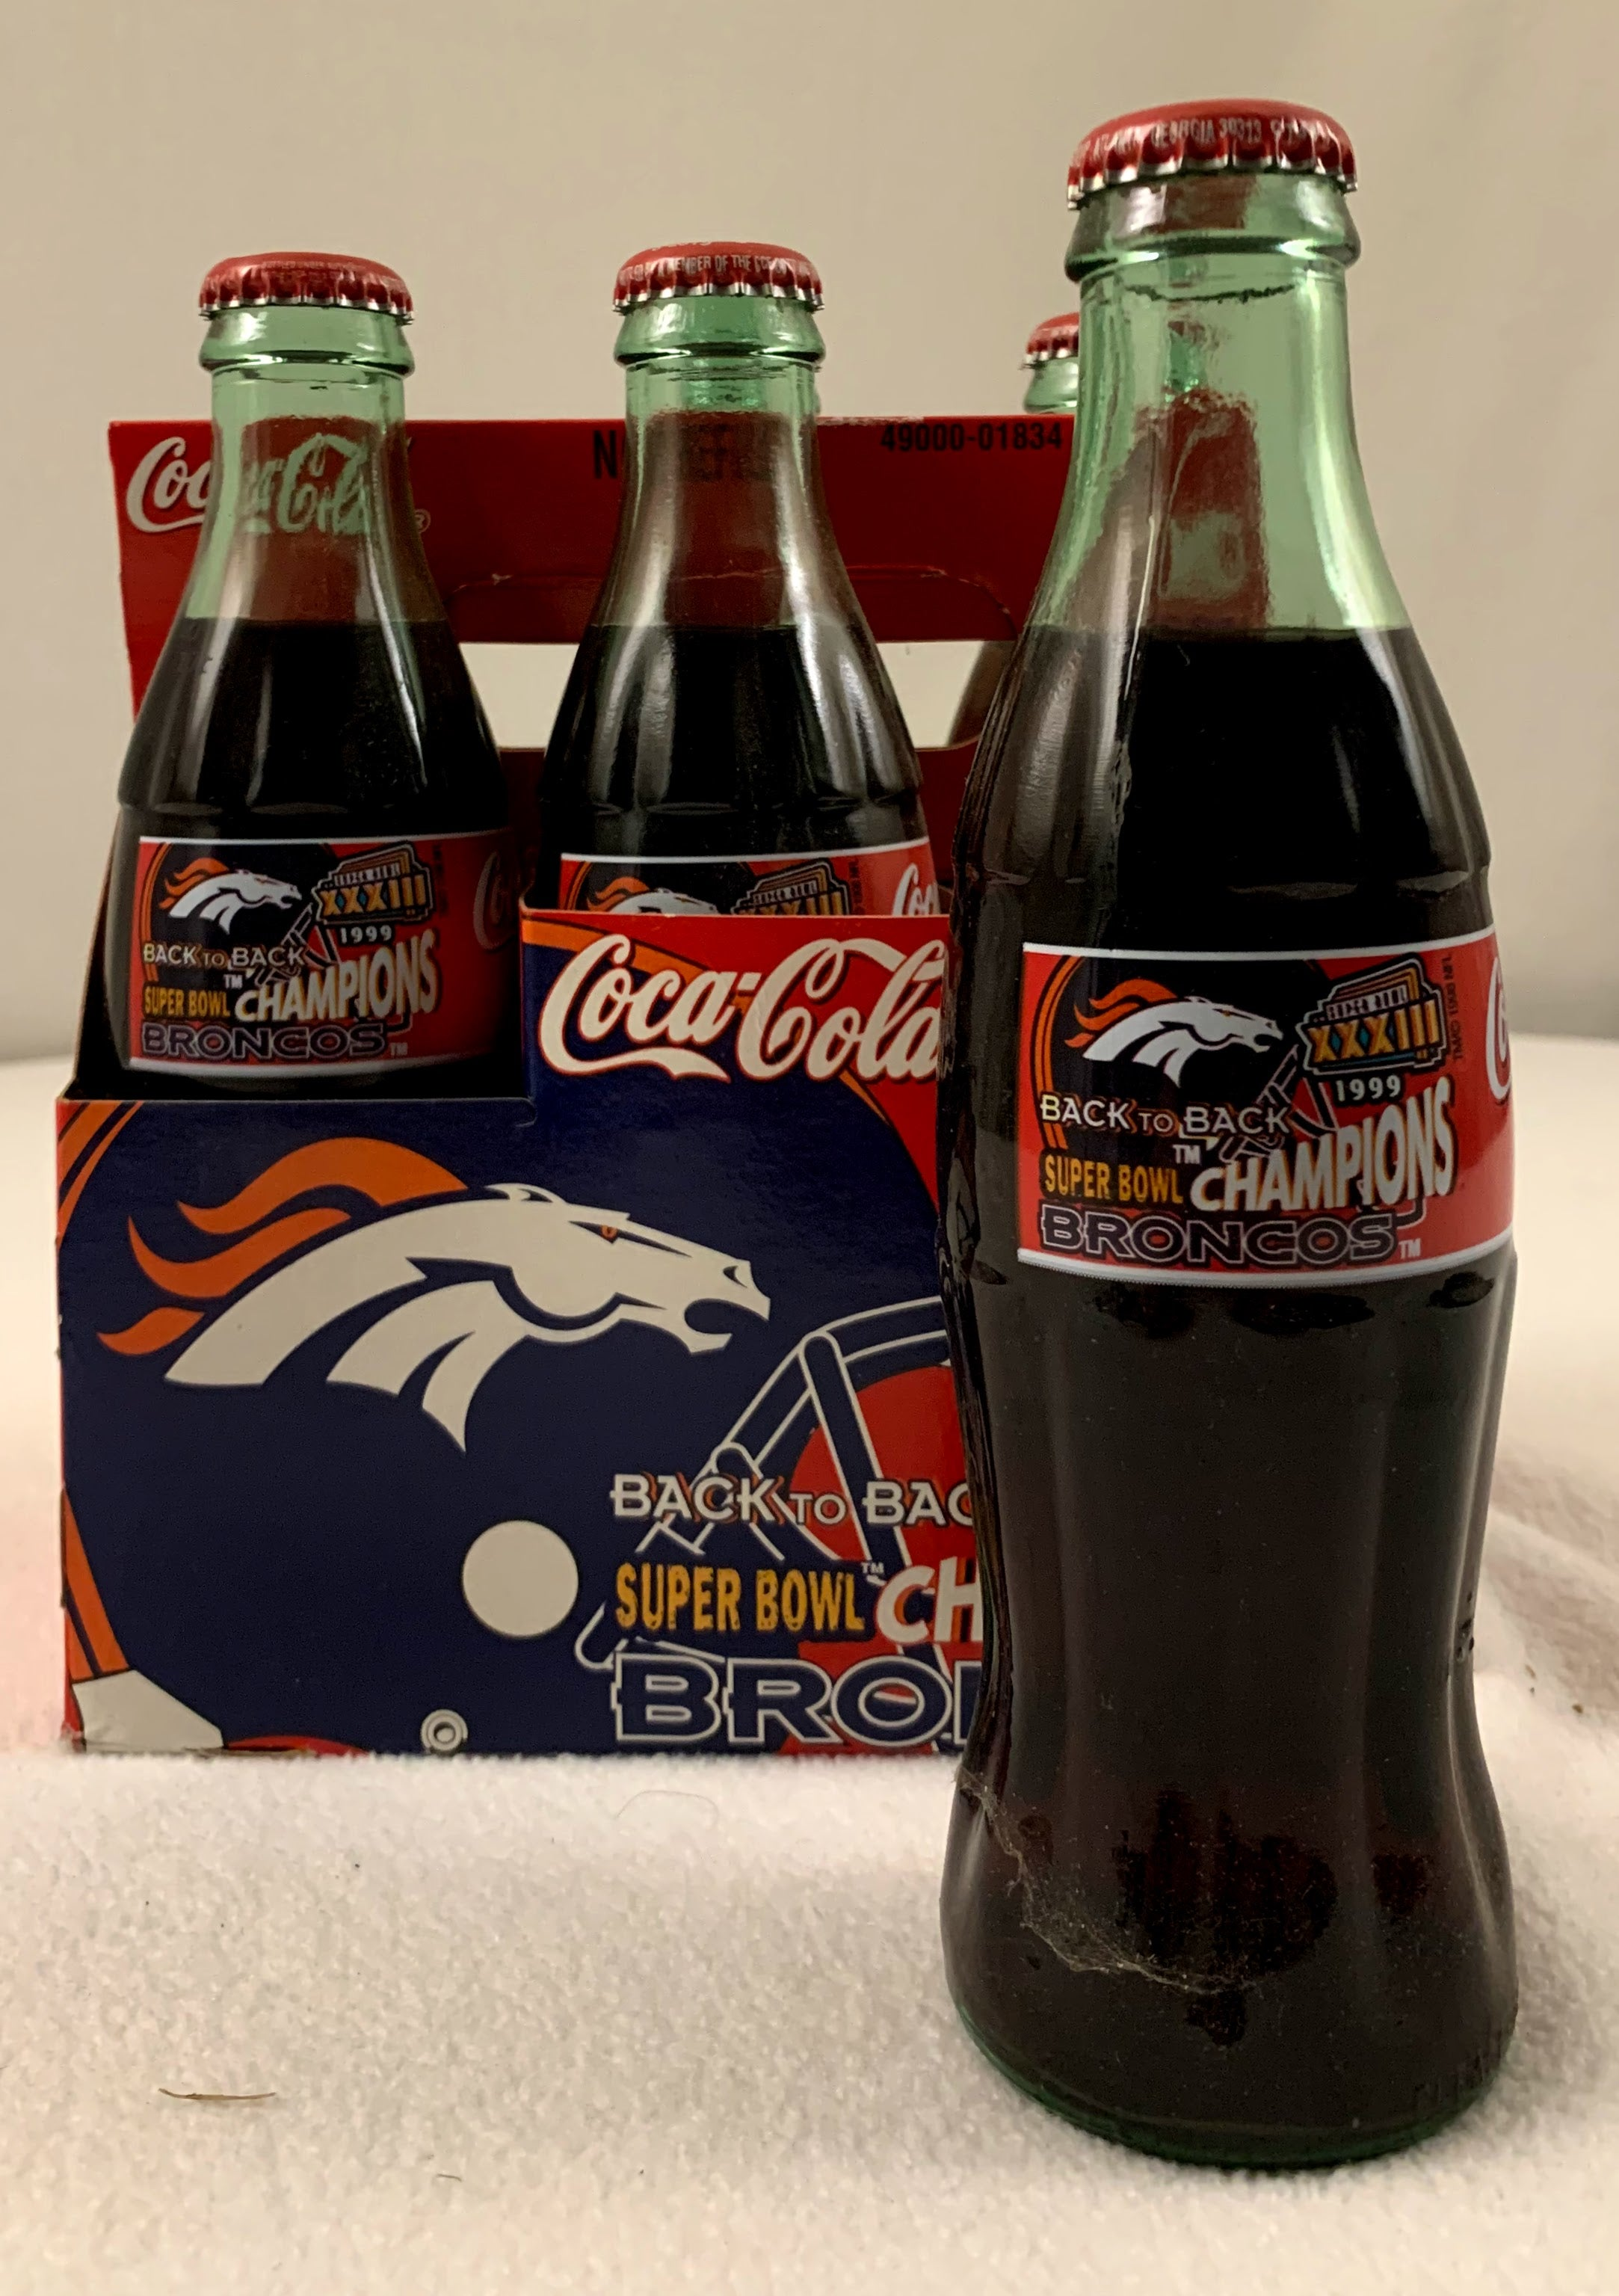 Super Bowl XXXIII Coke Bottles Unopened Missing One - Latitude Sports Marketing